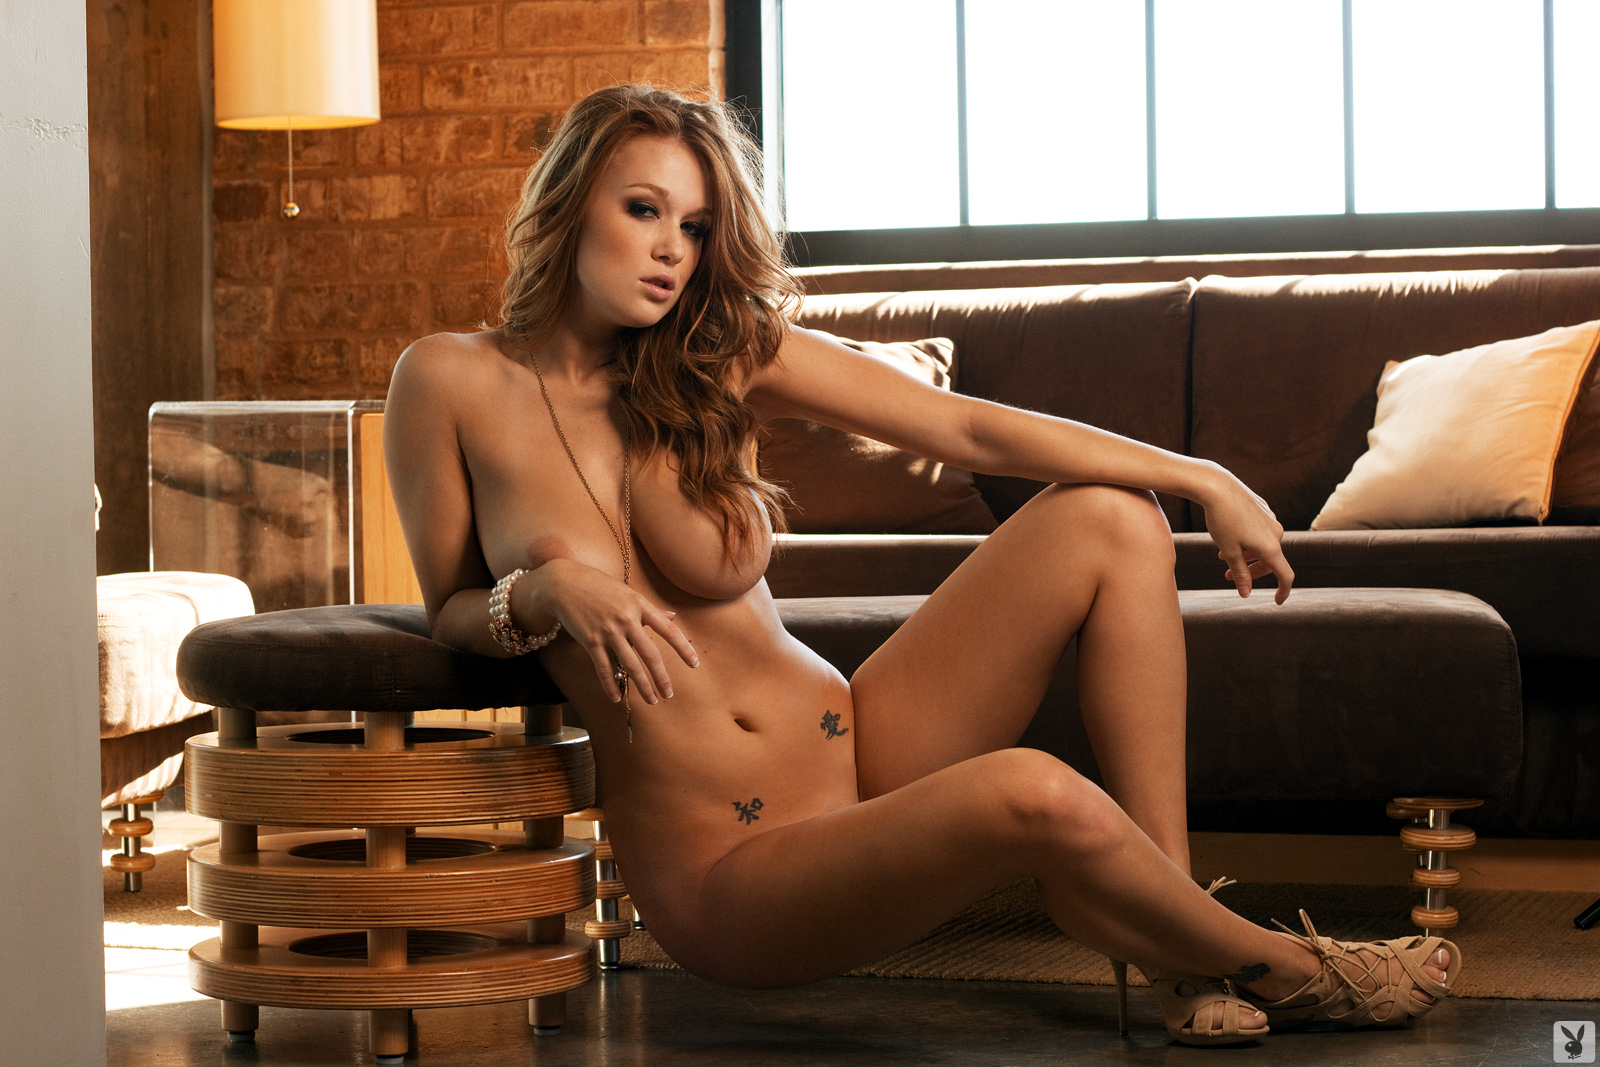 Playboy cybergirls nude oiled, cold shower nude scenes